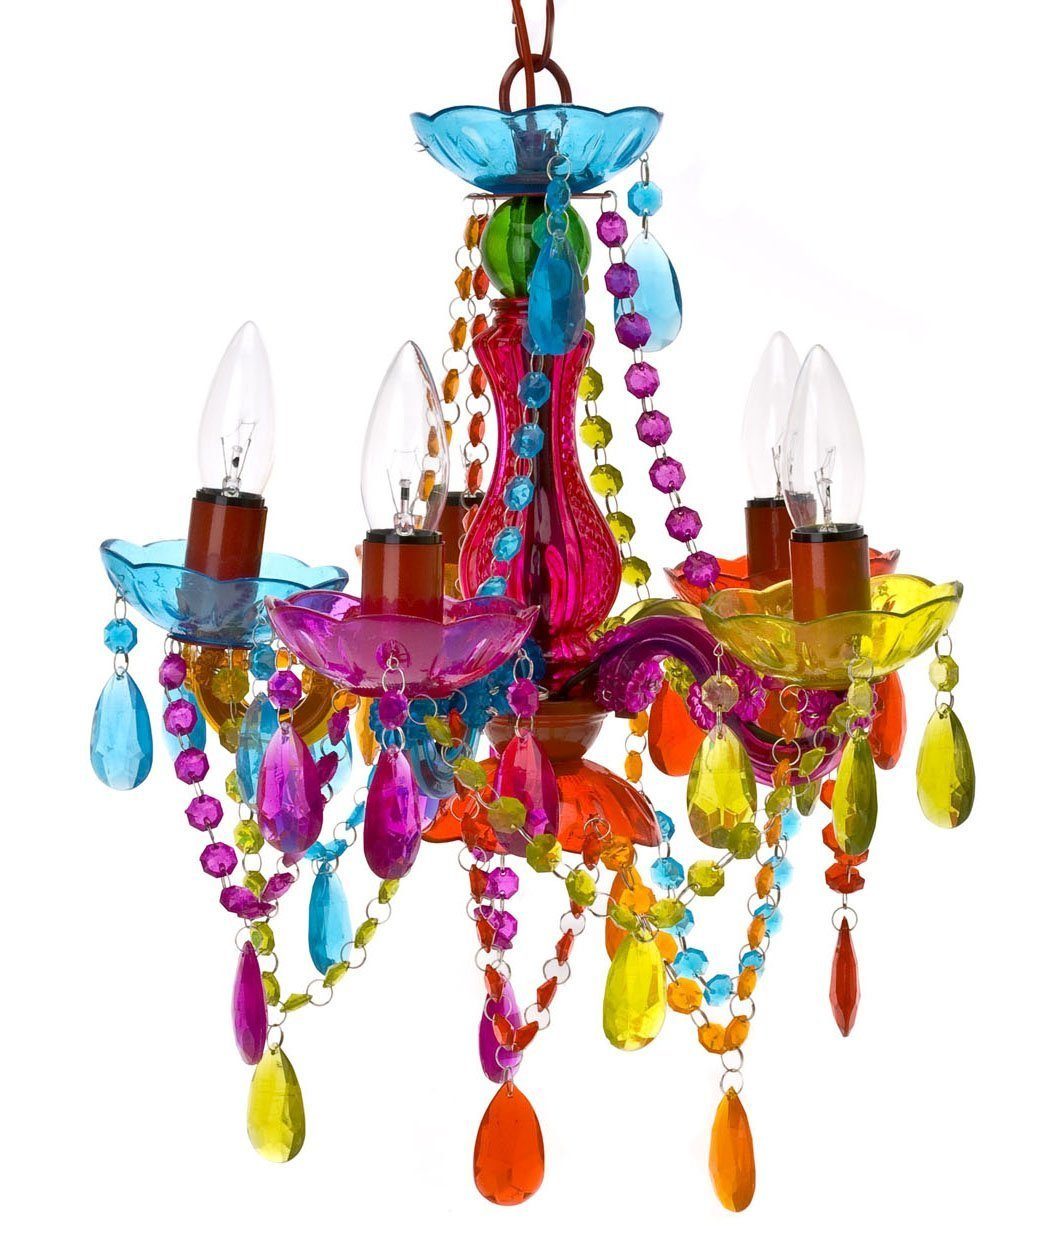 Total fab affordable chandeliers for girls to teens rooms cheap under 80 5 arm multi color girls teens chandelier arubaitofo Image collections